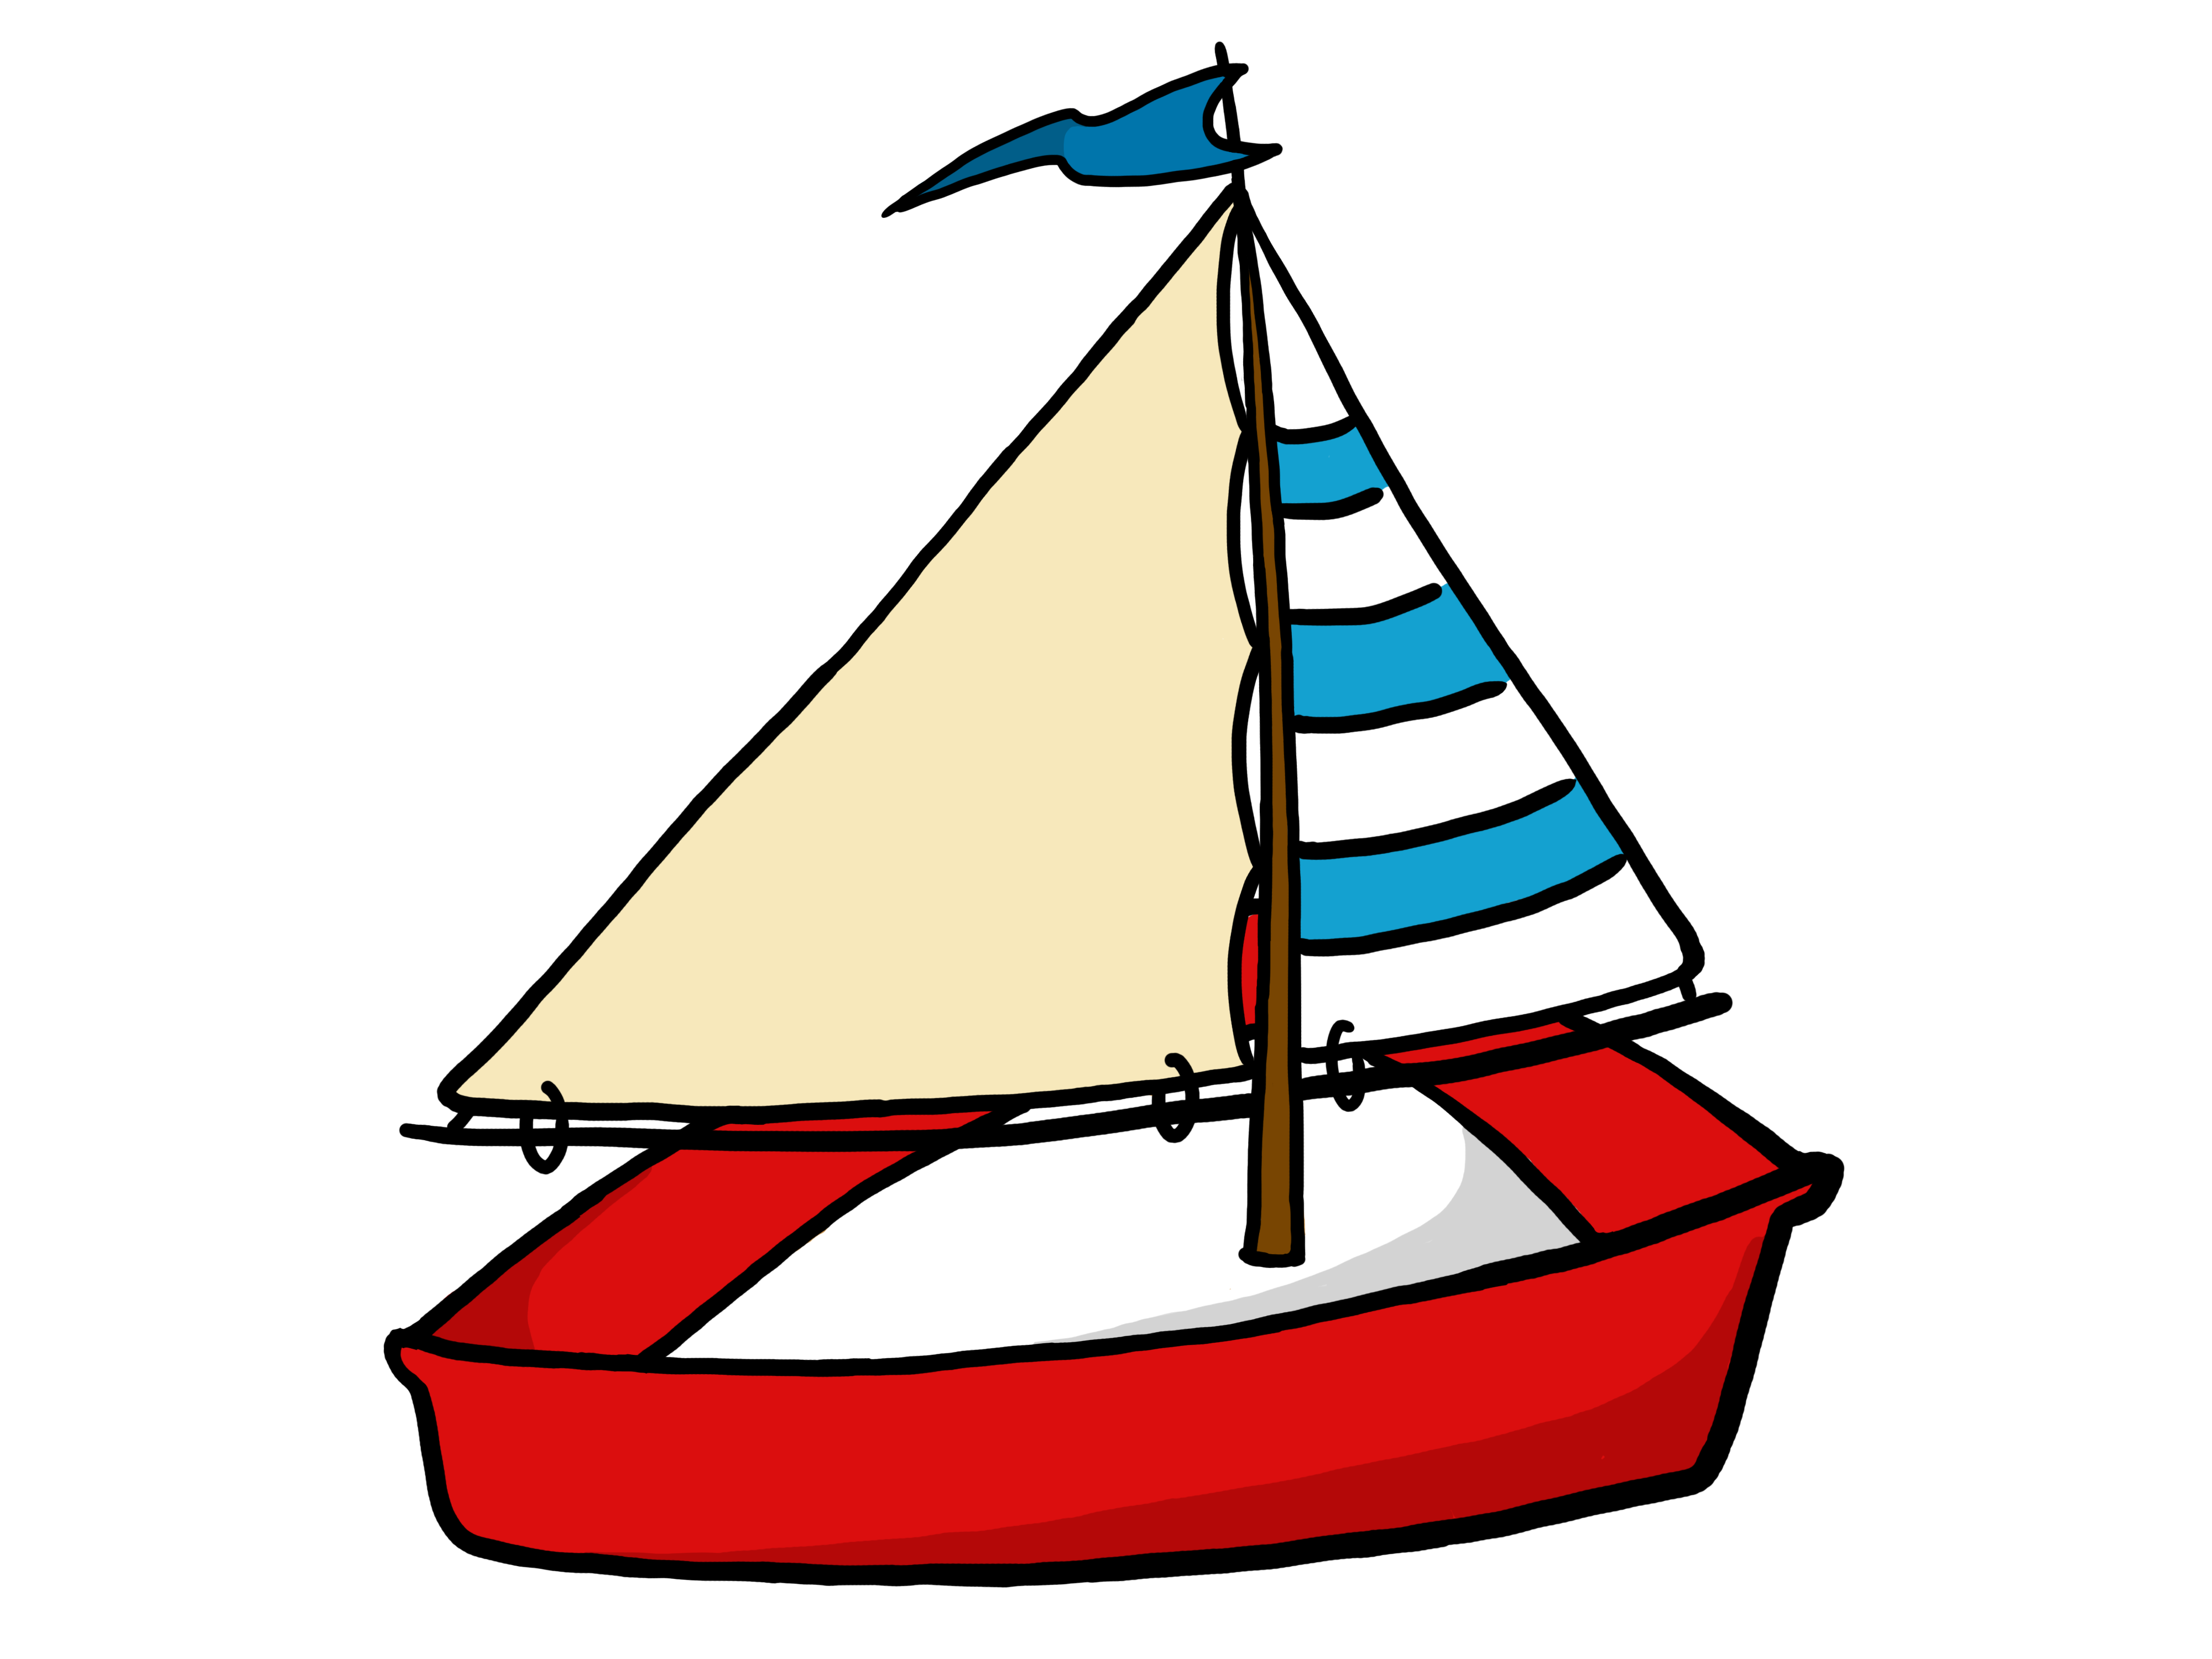 Ship clipart transparent background. Boat png free icons